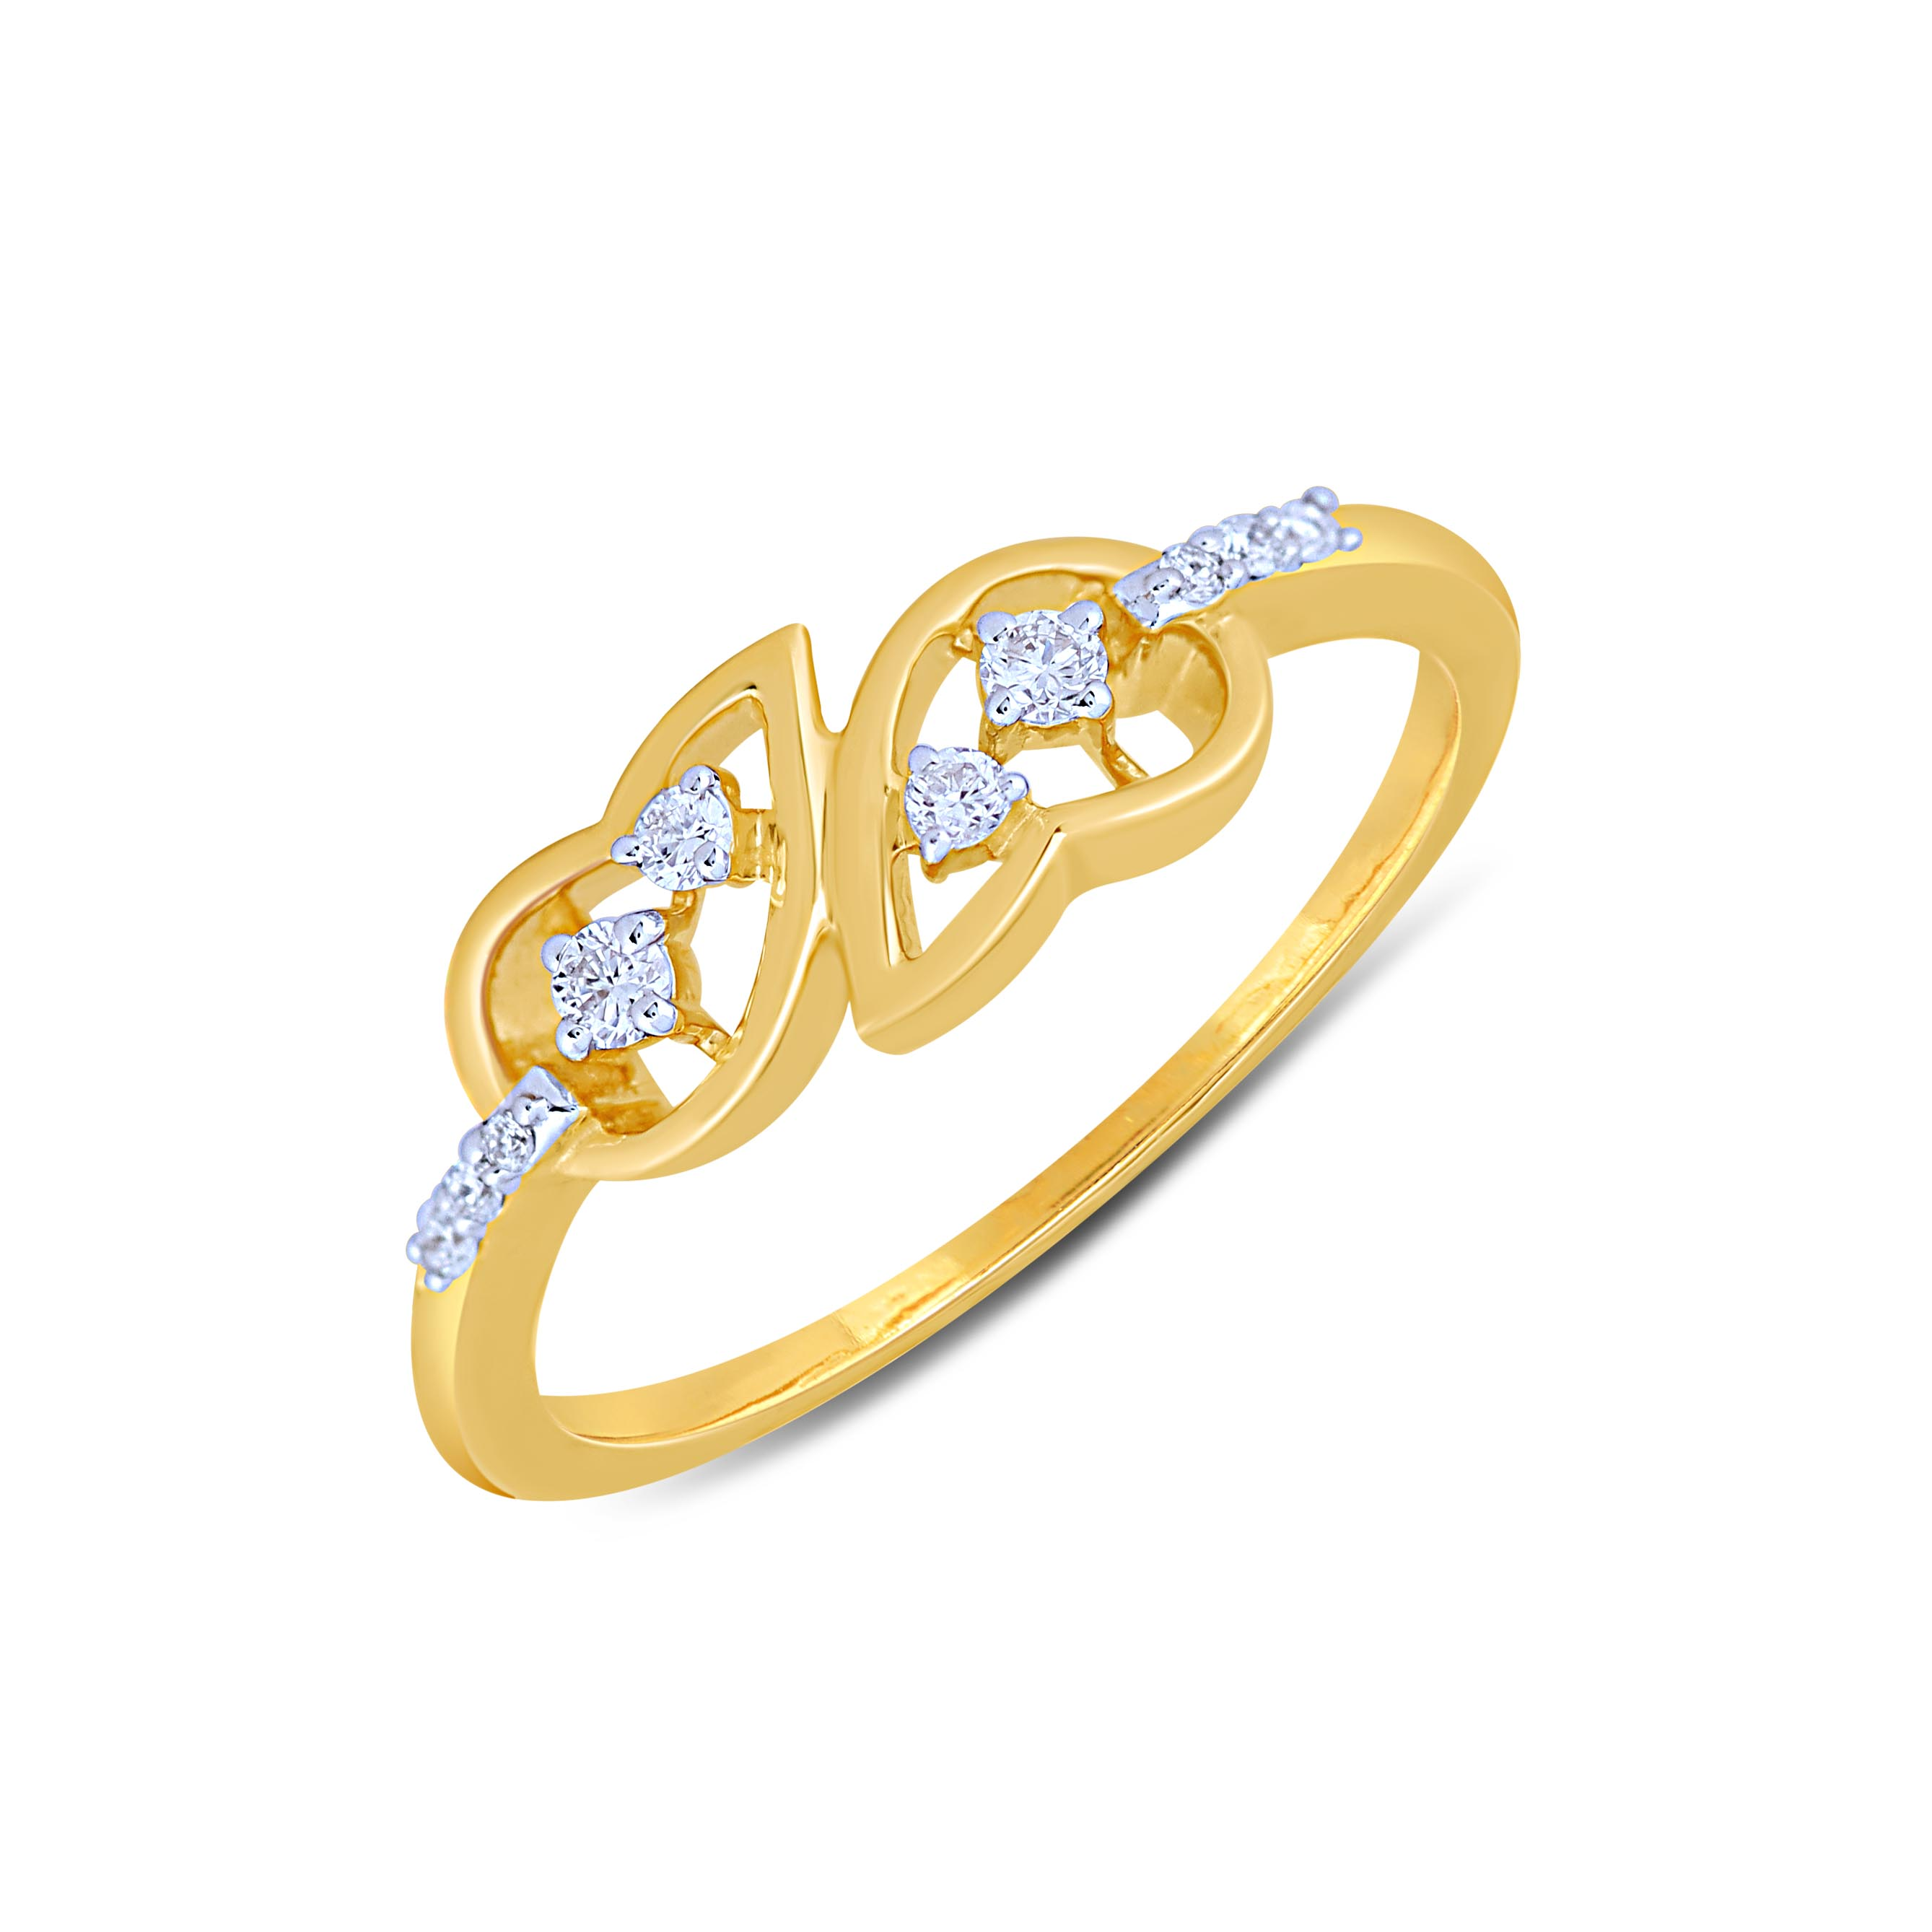 Angelic Diamond Ladies Ring